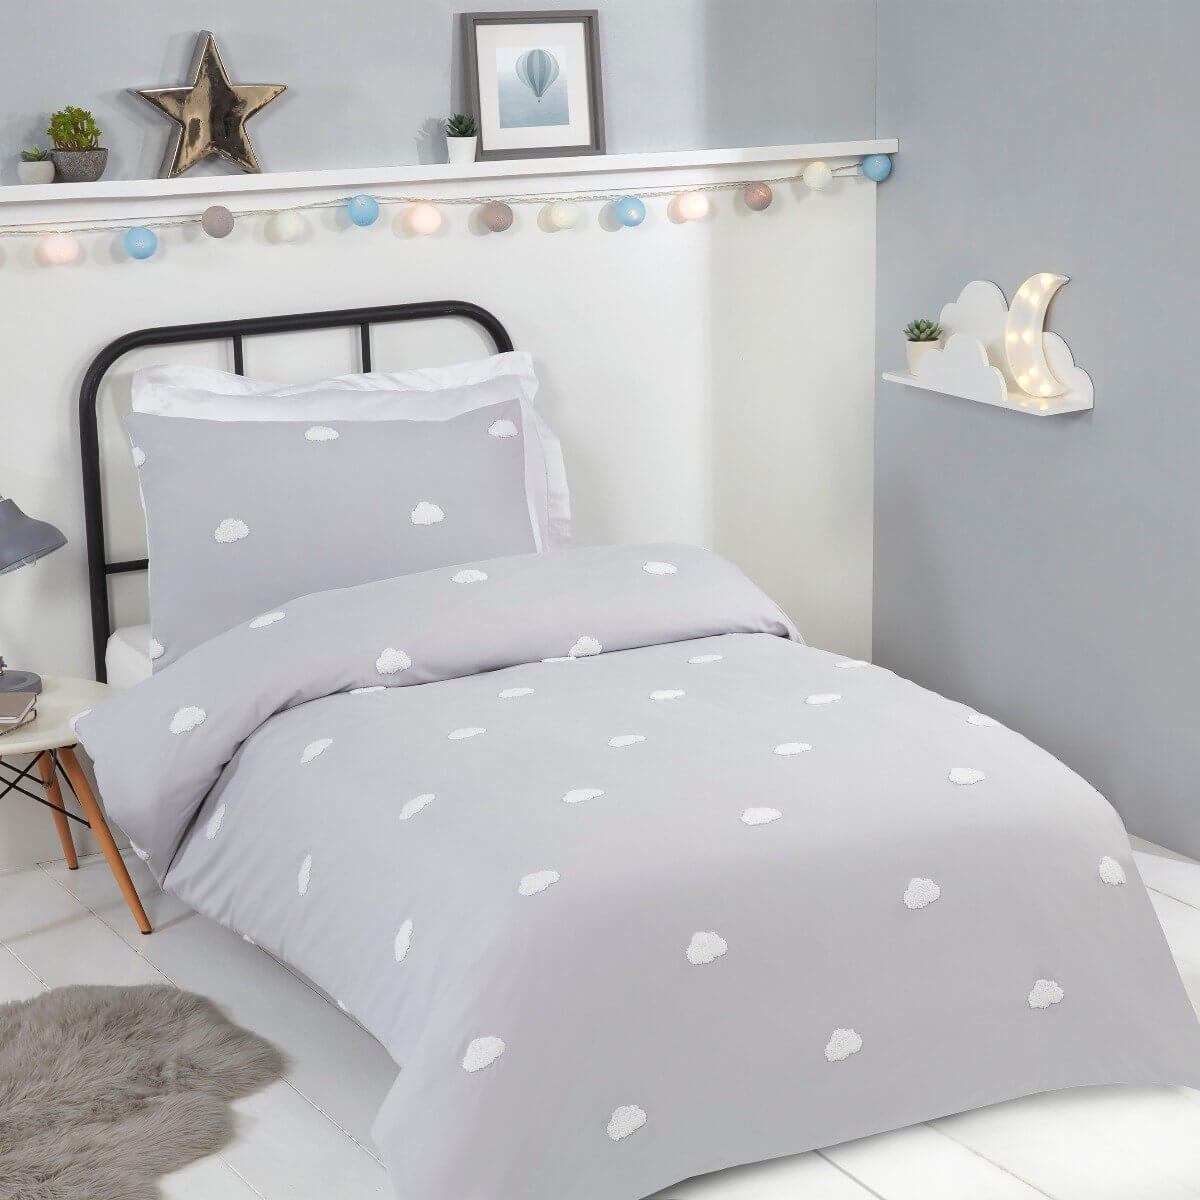 Tufted Clouds Grey Bedding - Duvet Cover And Pillowcase Set